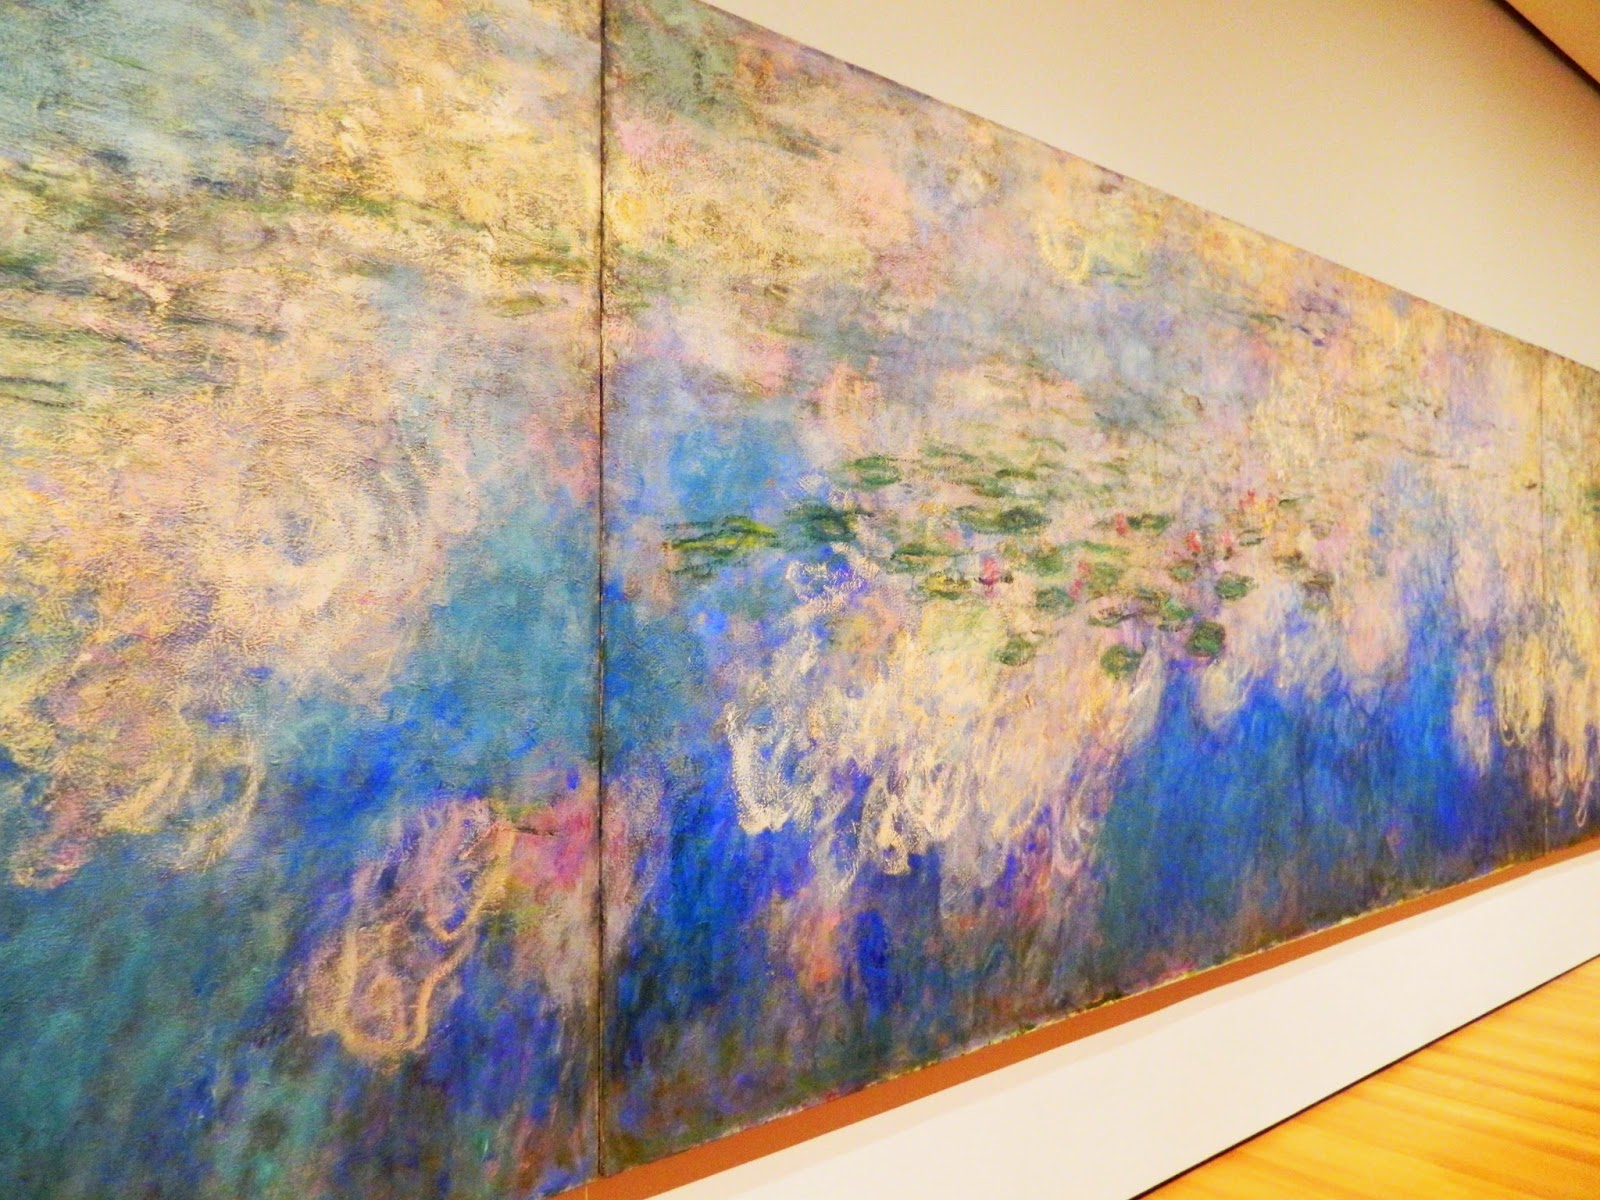 Claude Monet, Water Lilies mural big water pond sky nature